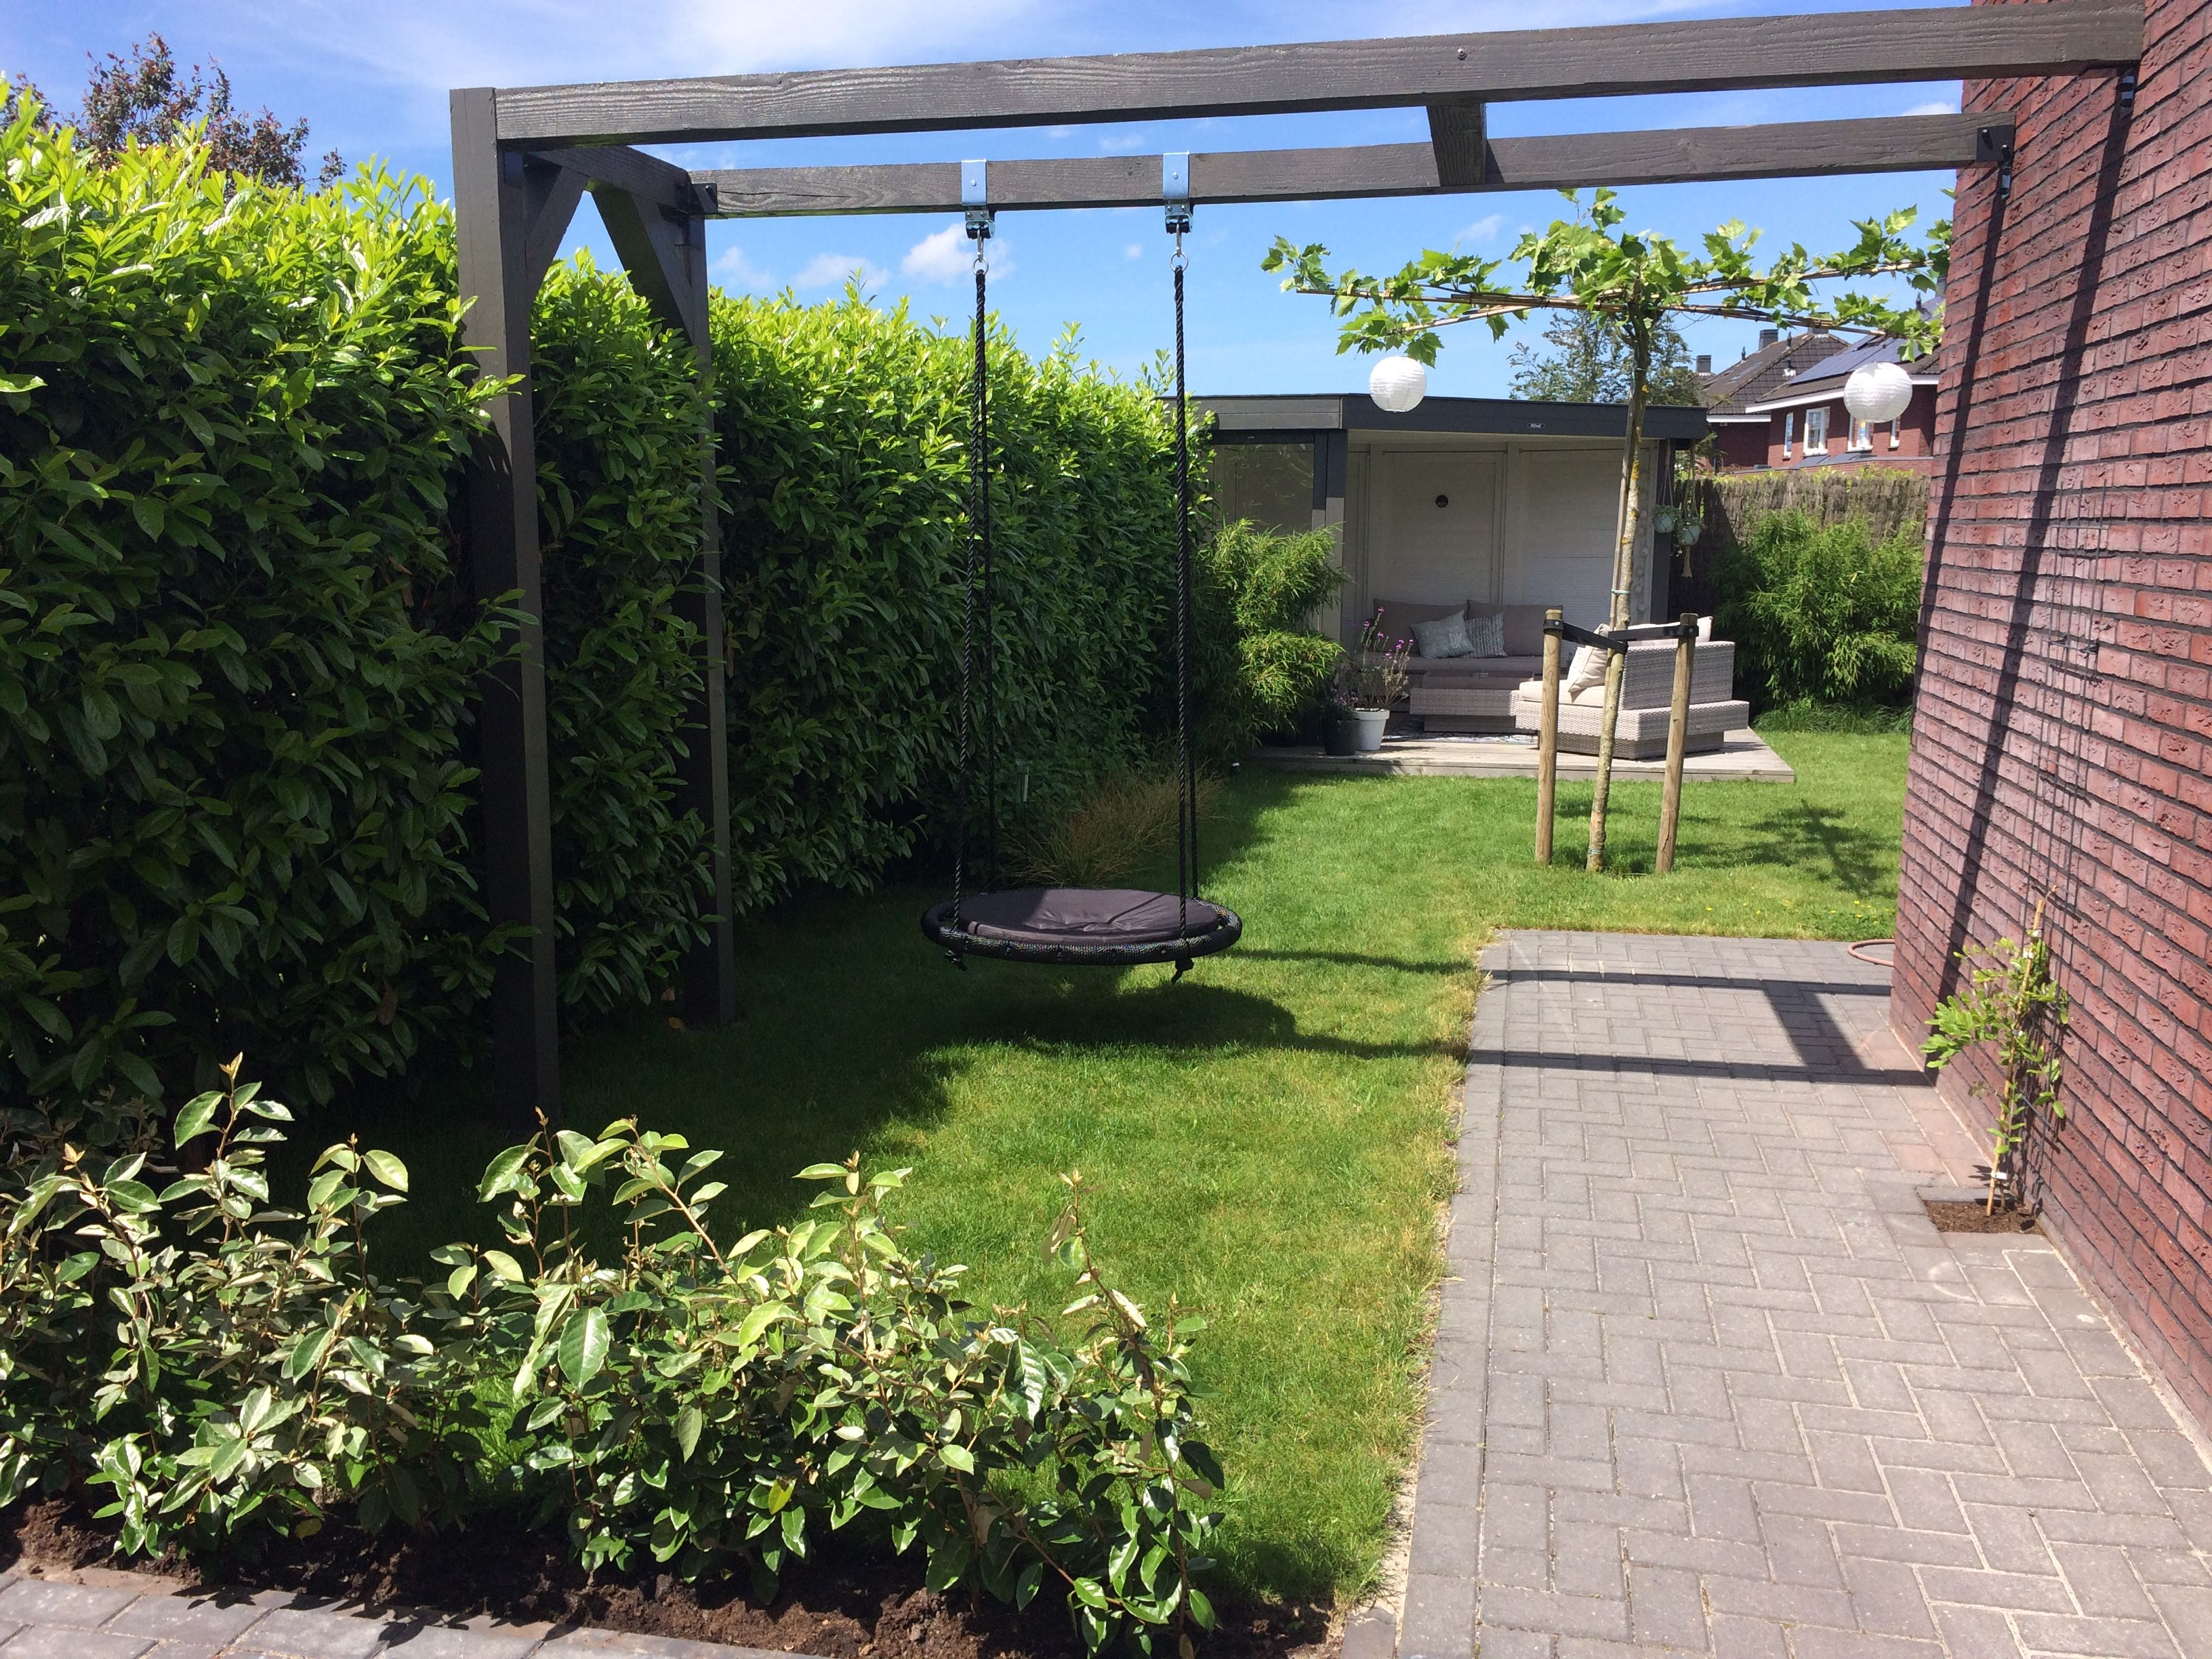 Loungeset Tuin Hout : Add style to your pergola в 2018 г. Опоры pinterest pergola